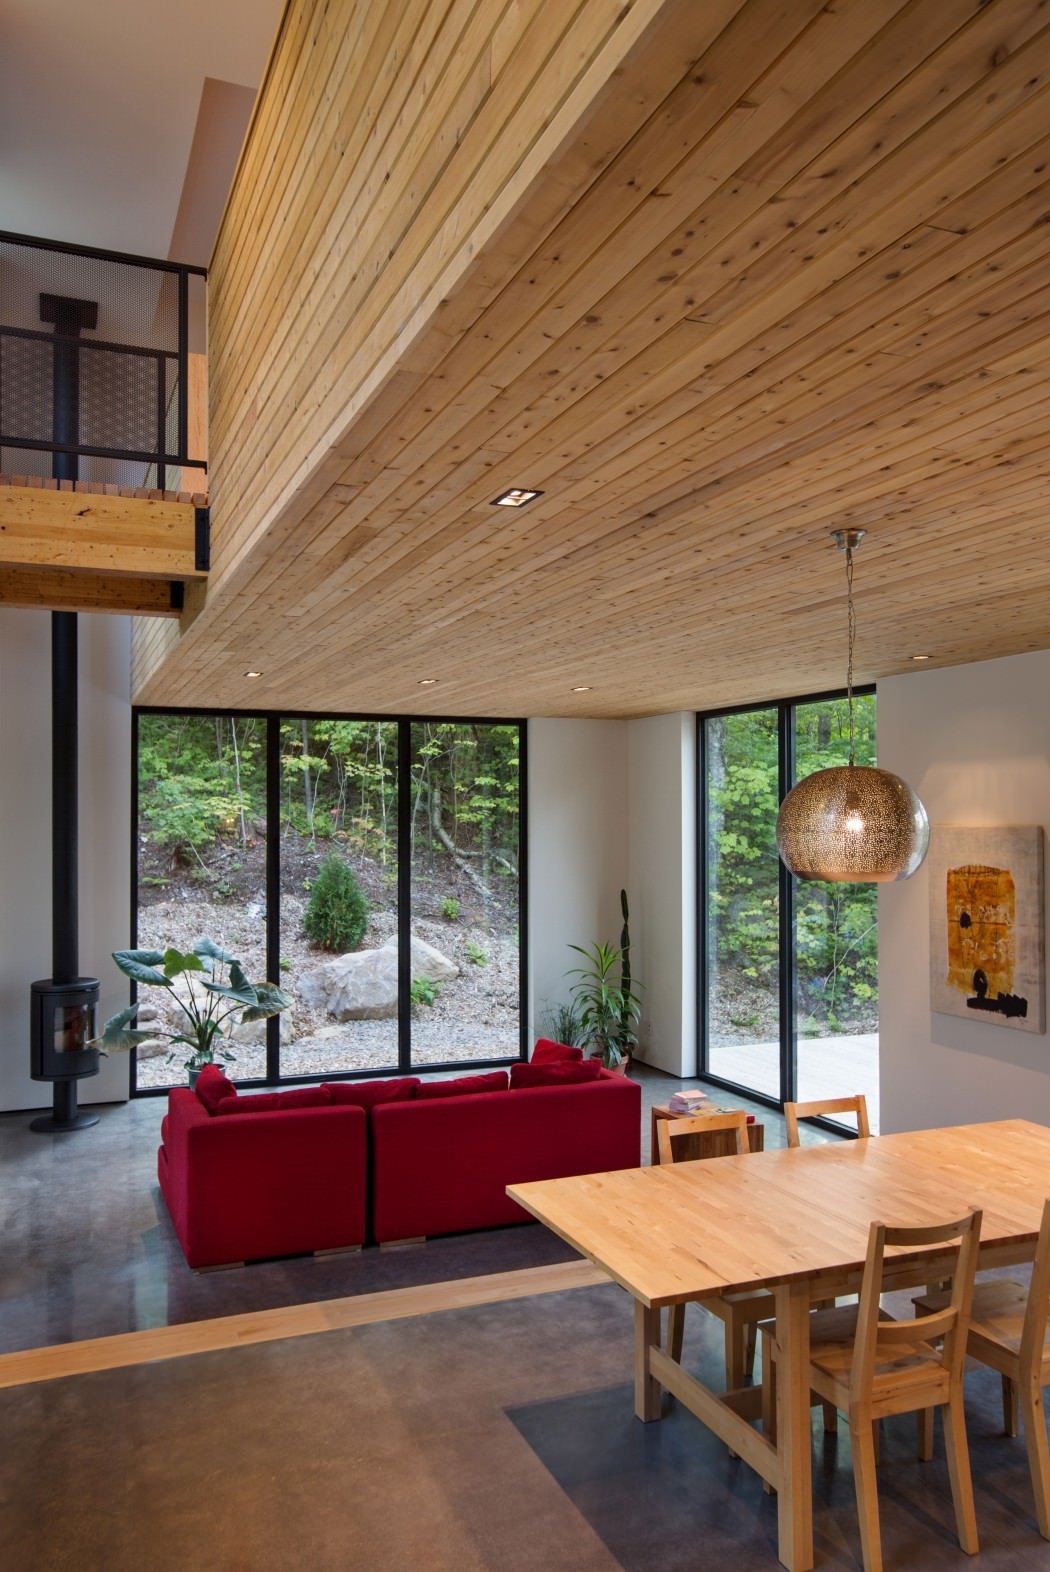 La-Chasse-Galerie-by-Thellend-Fortin-Architectes-4